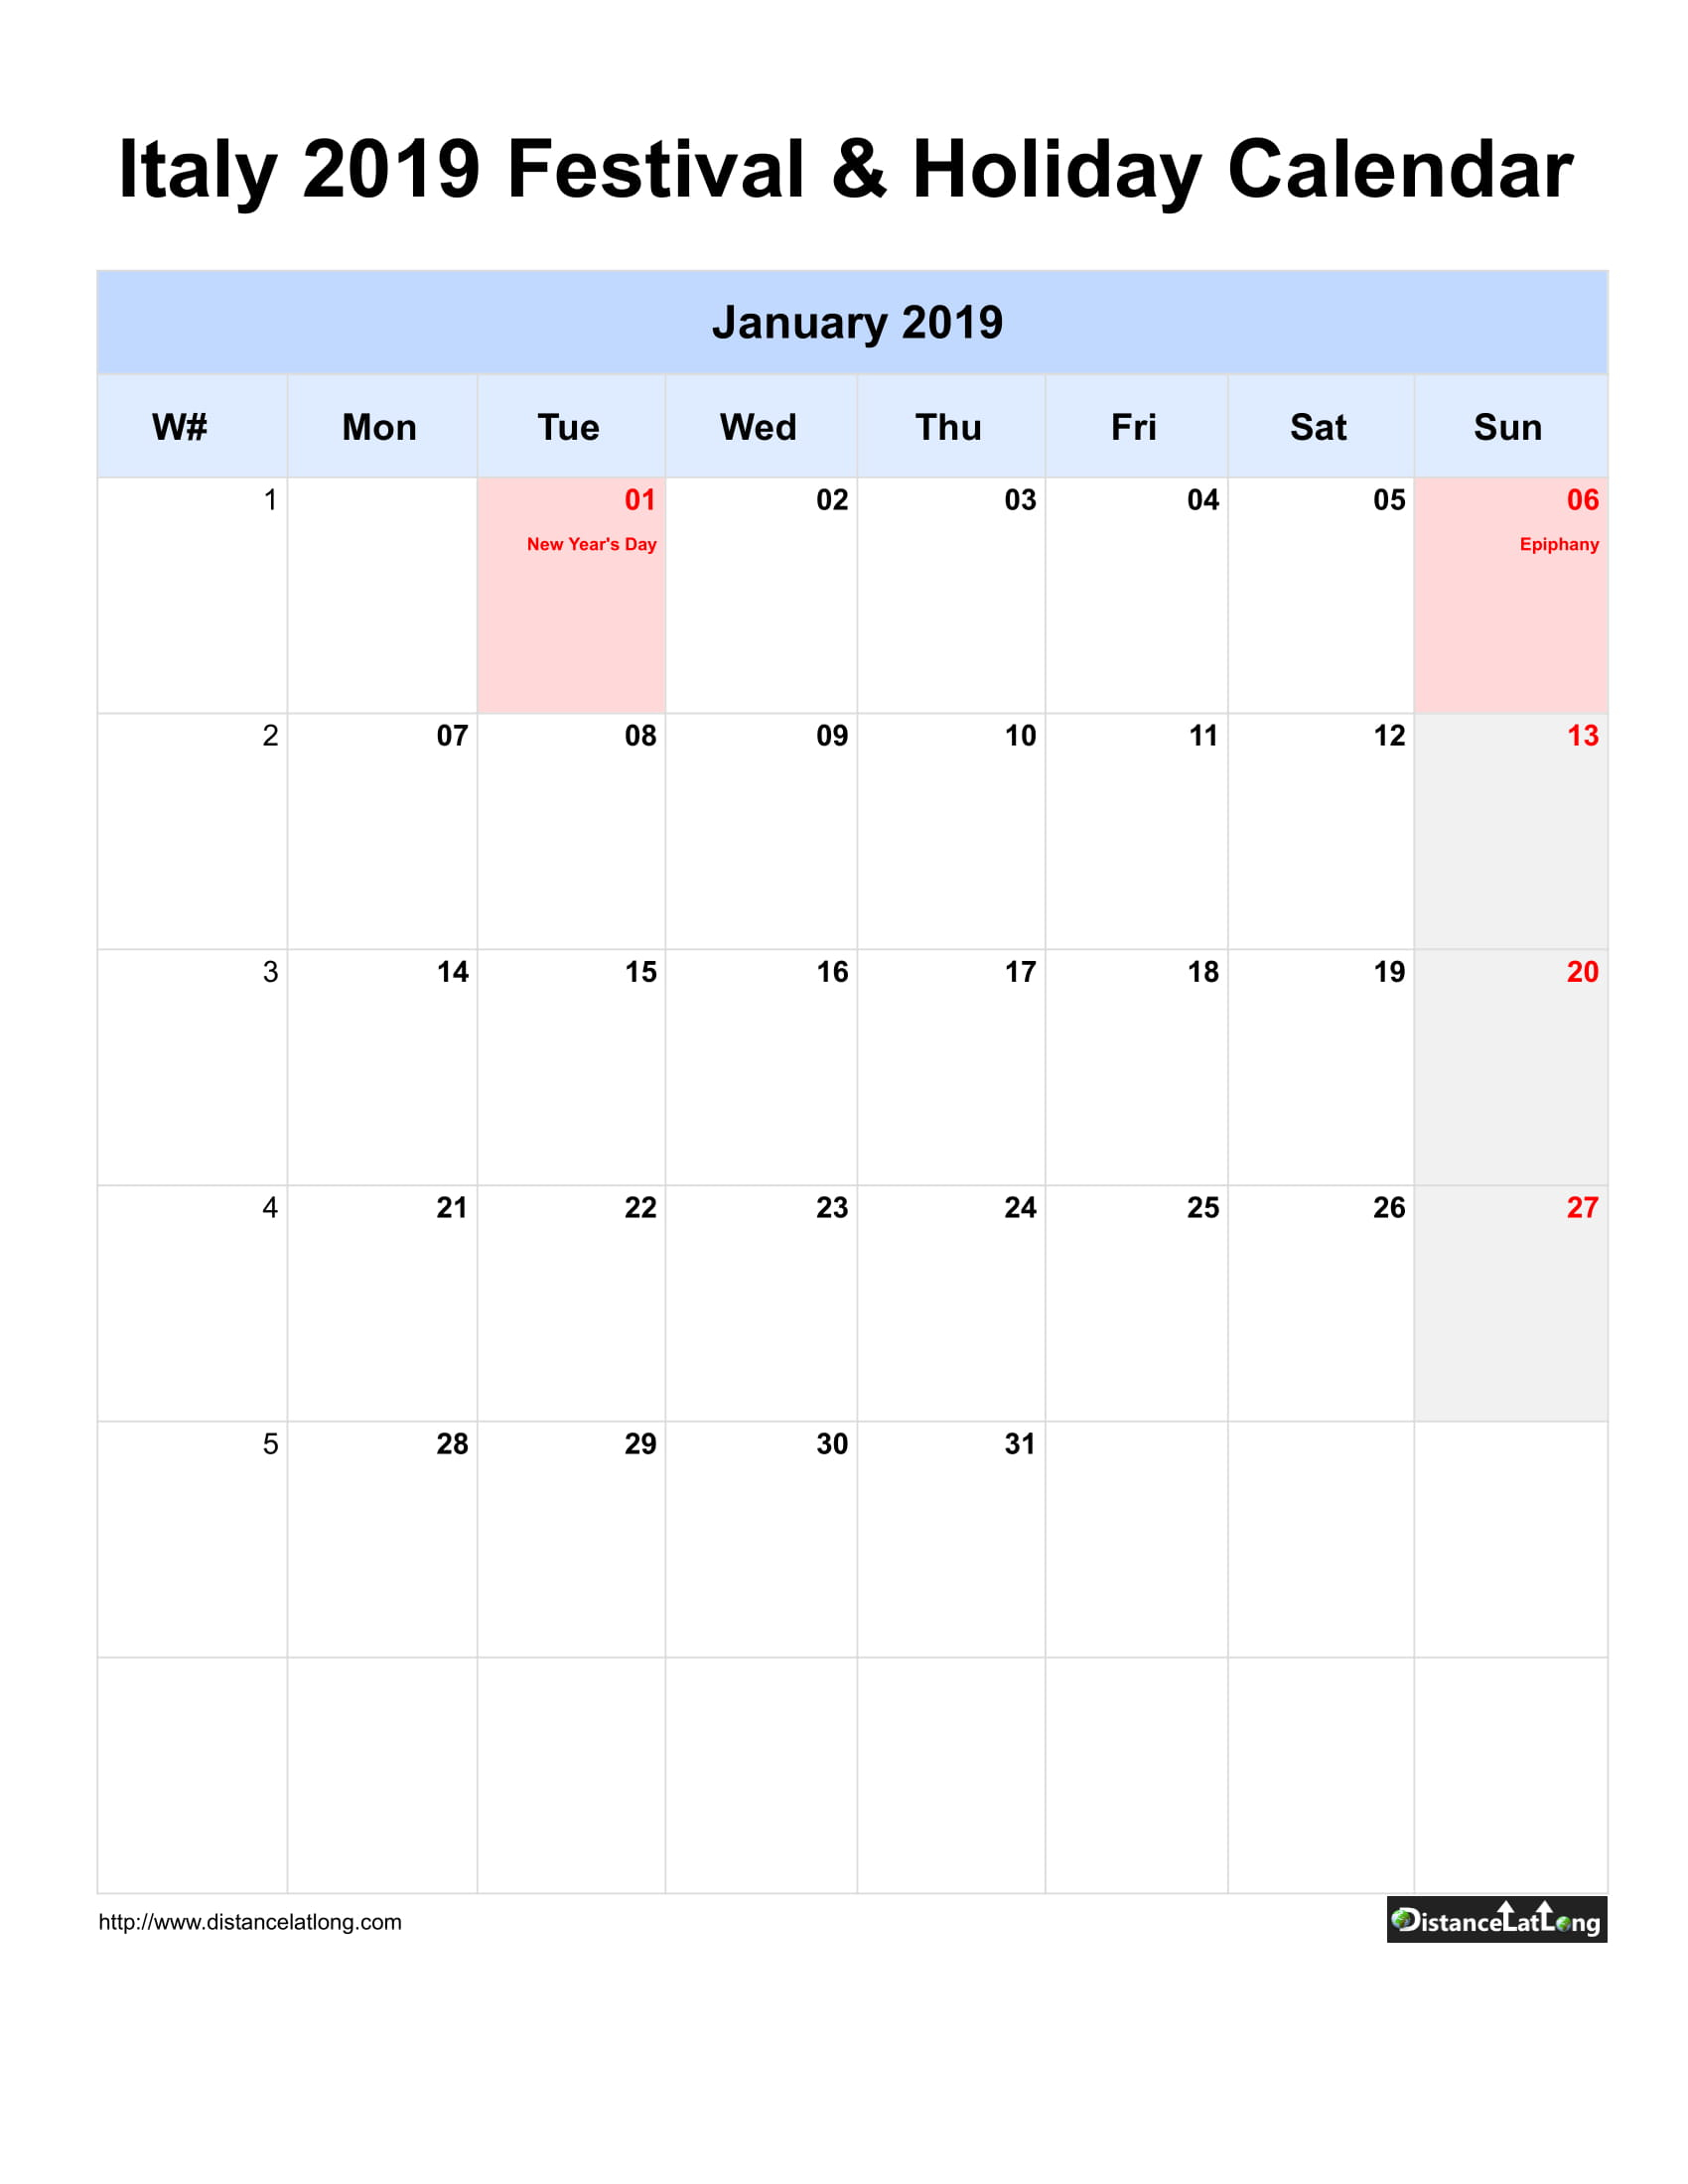 Italy Holiday Calendar 2019 Jpg Templates  Distancelatlong inside Monday Through Sunday Calendar